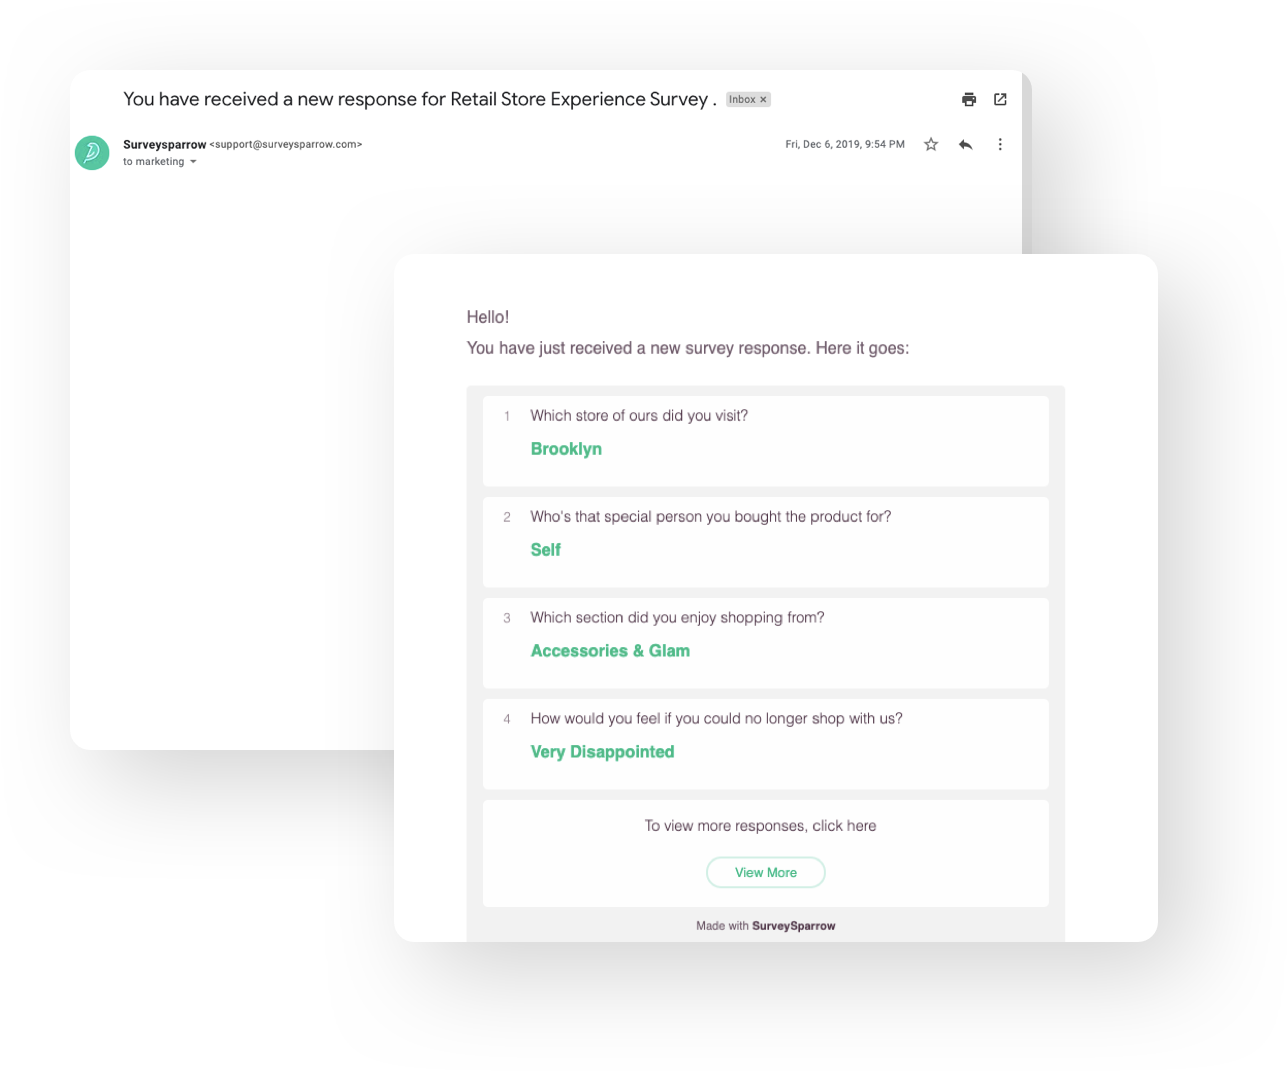 Get email notifications when someone completes the survey.